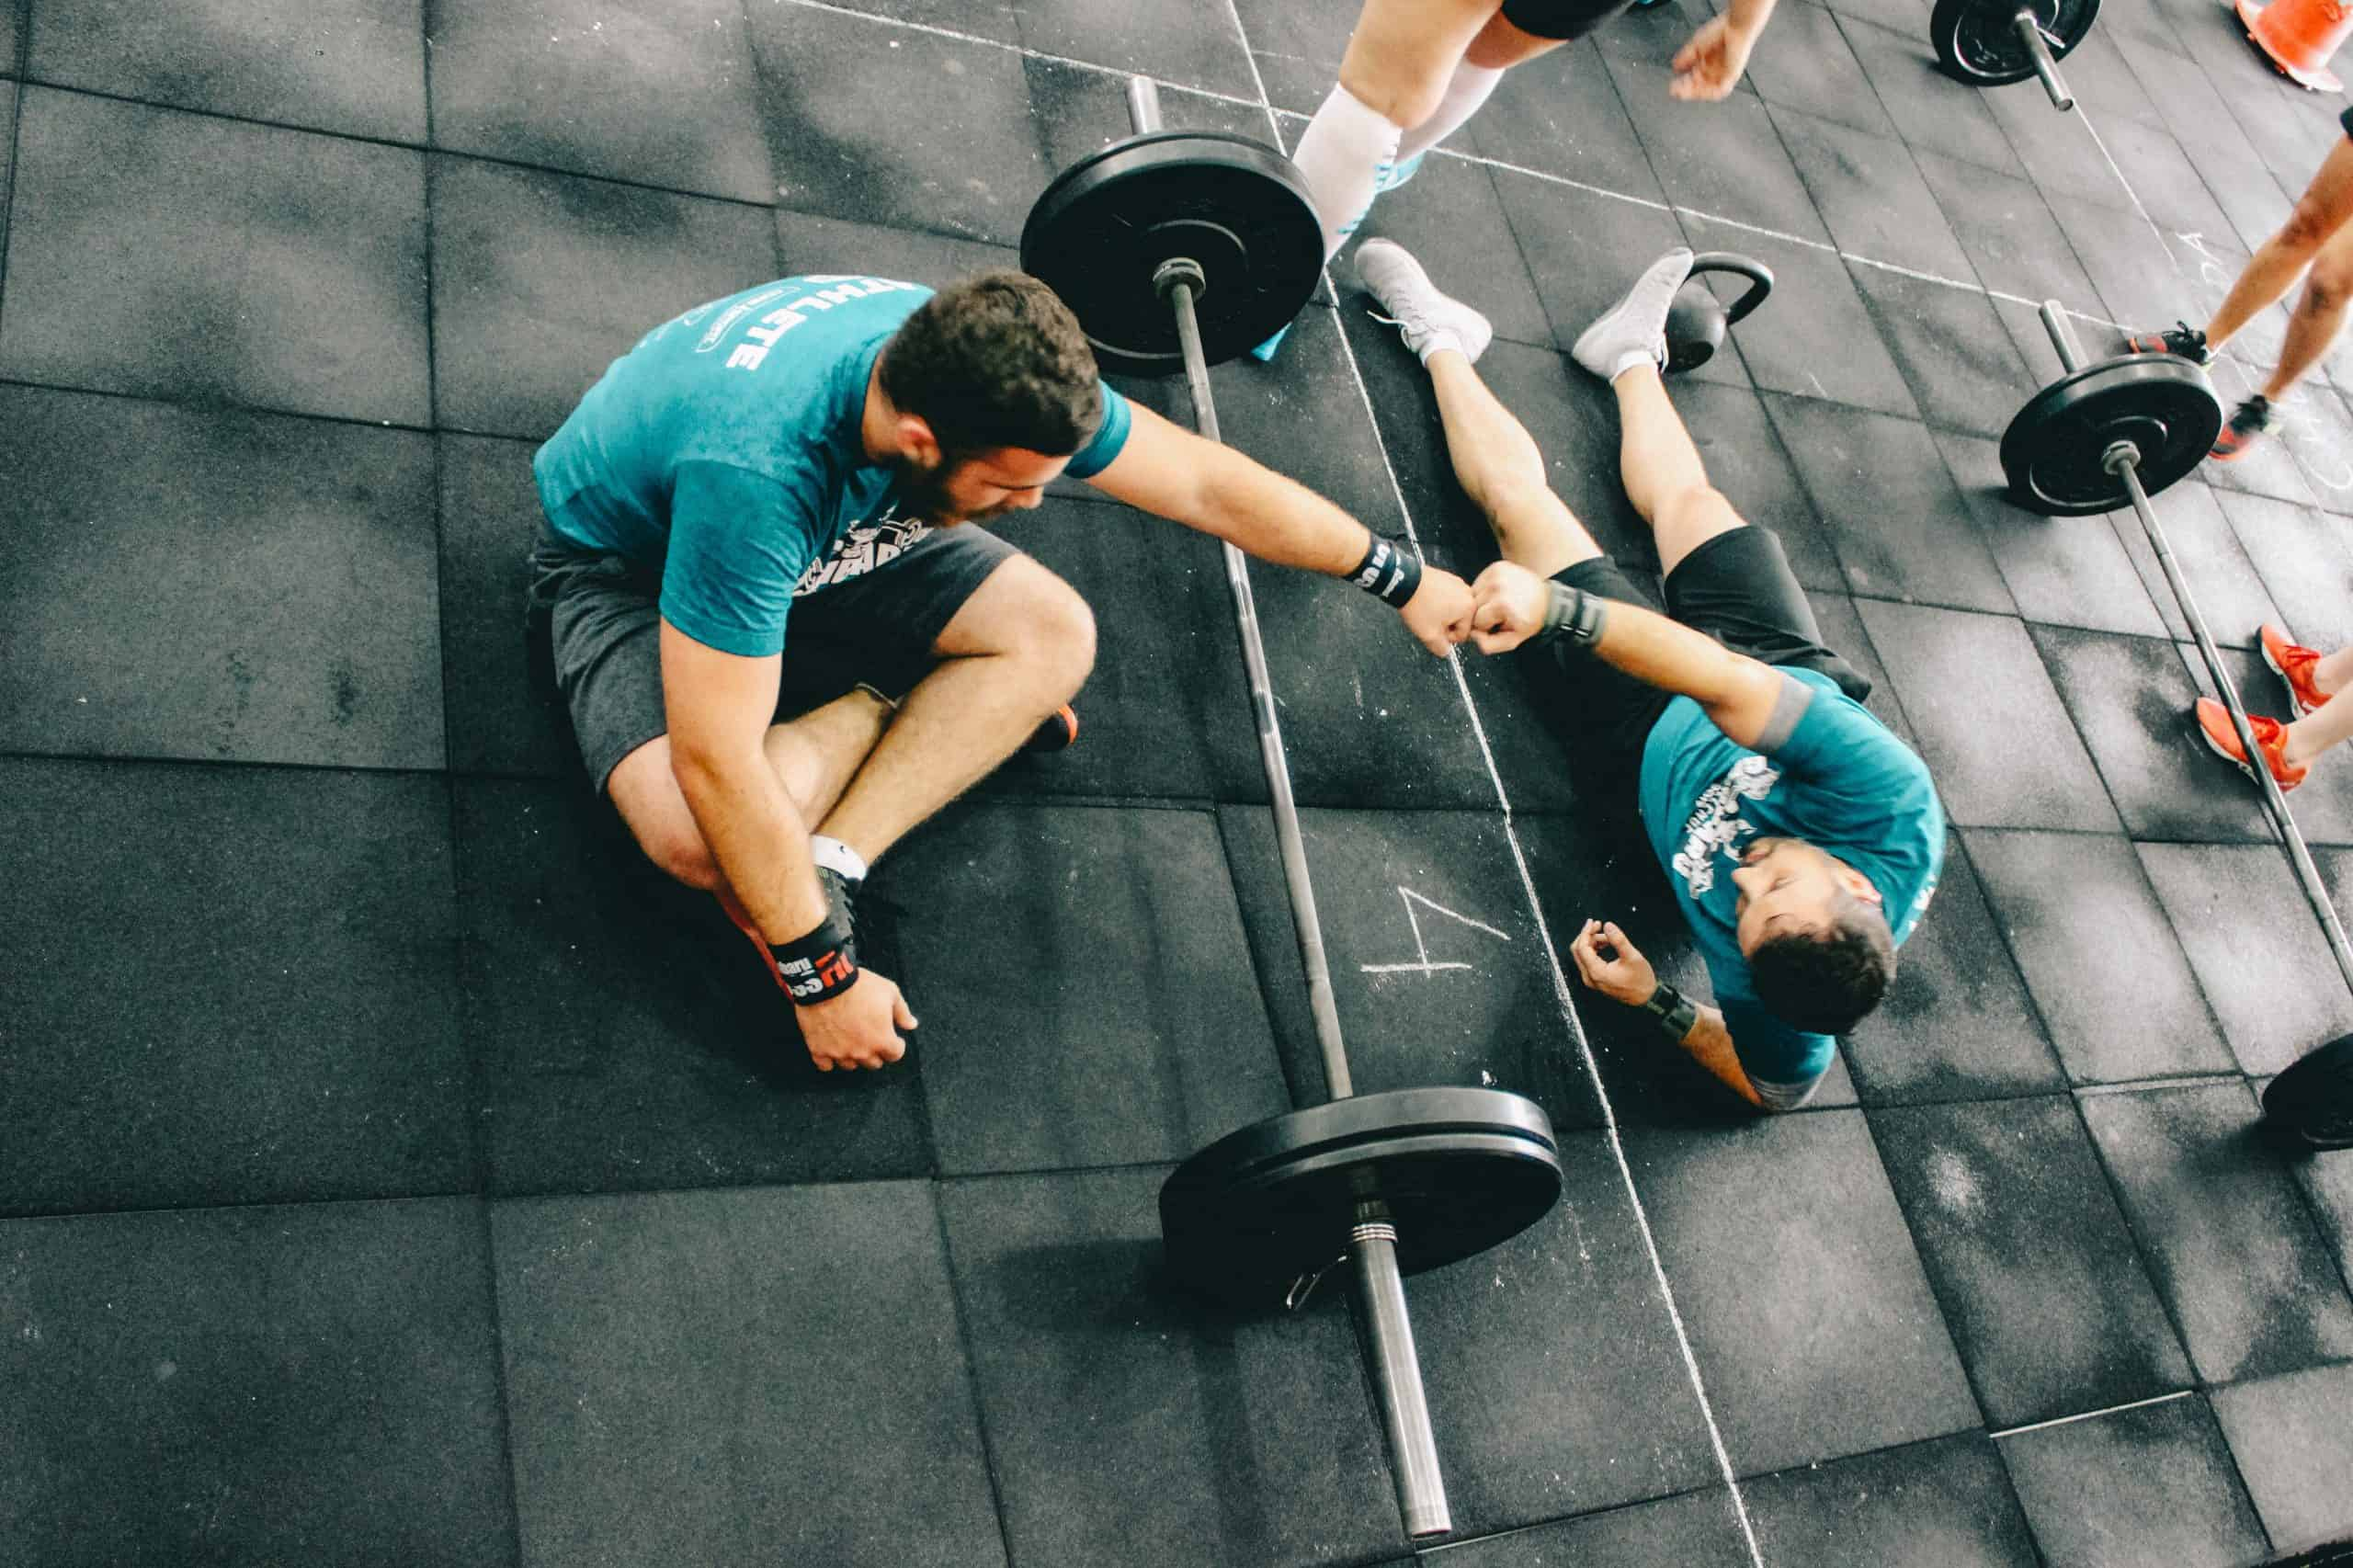 Crossfit can teach us a lot about how to build an online community